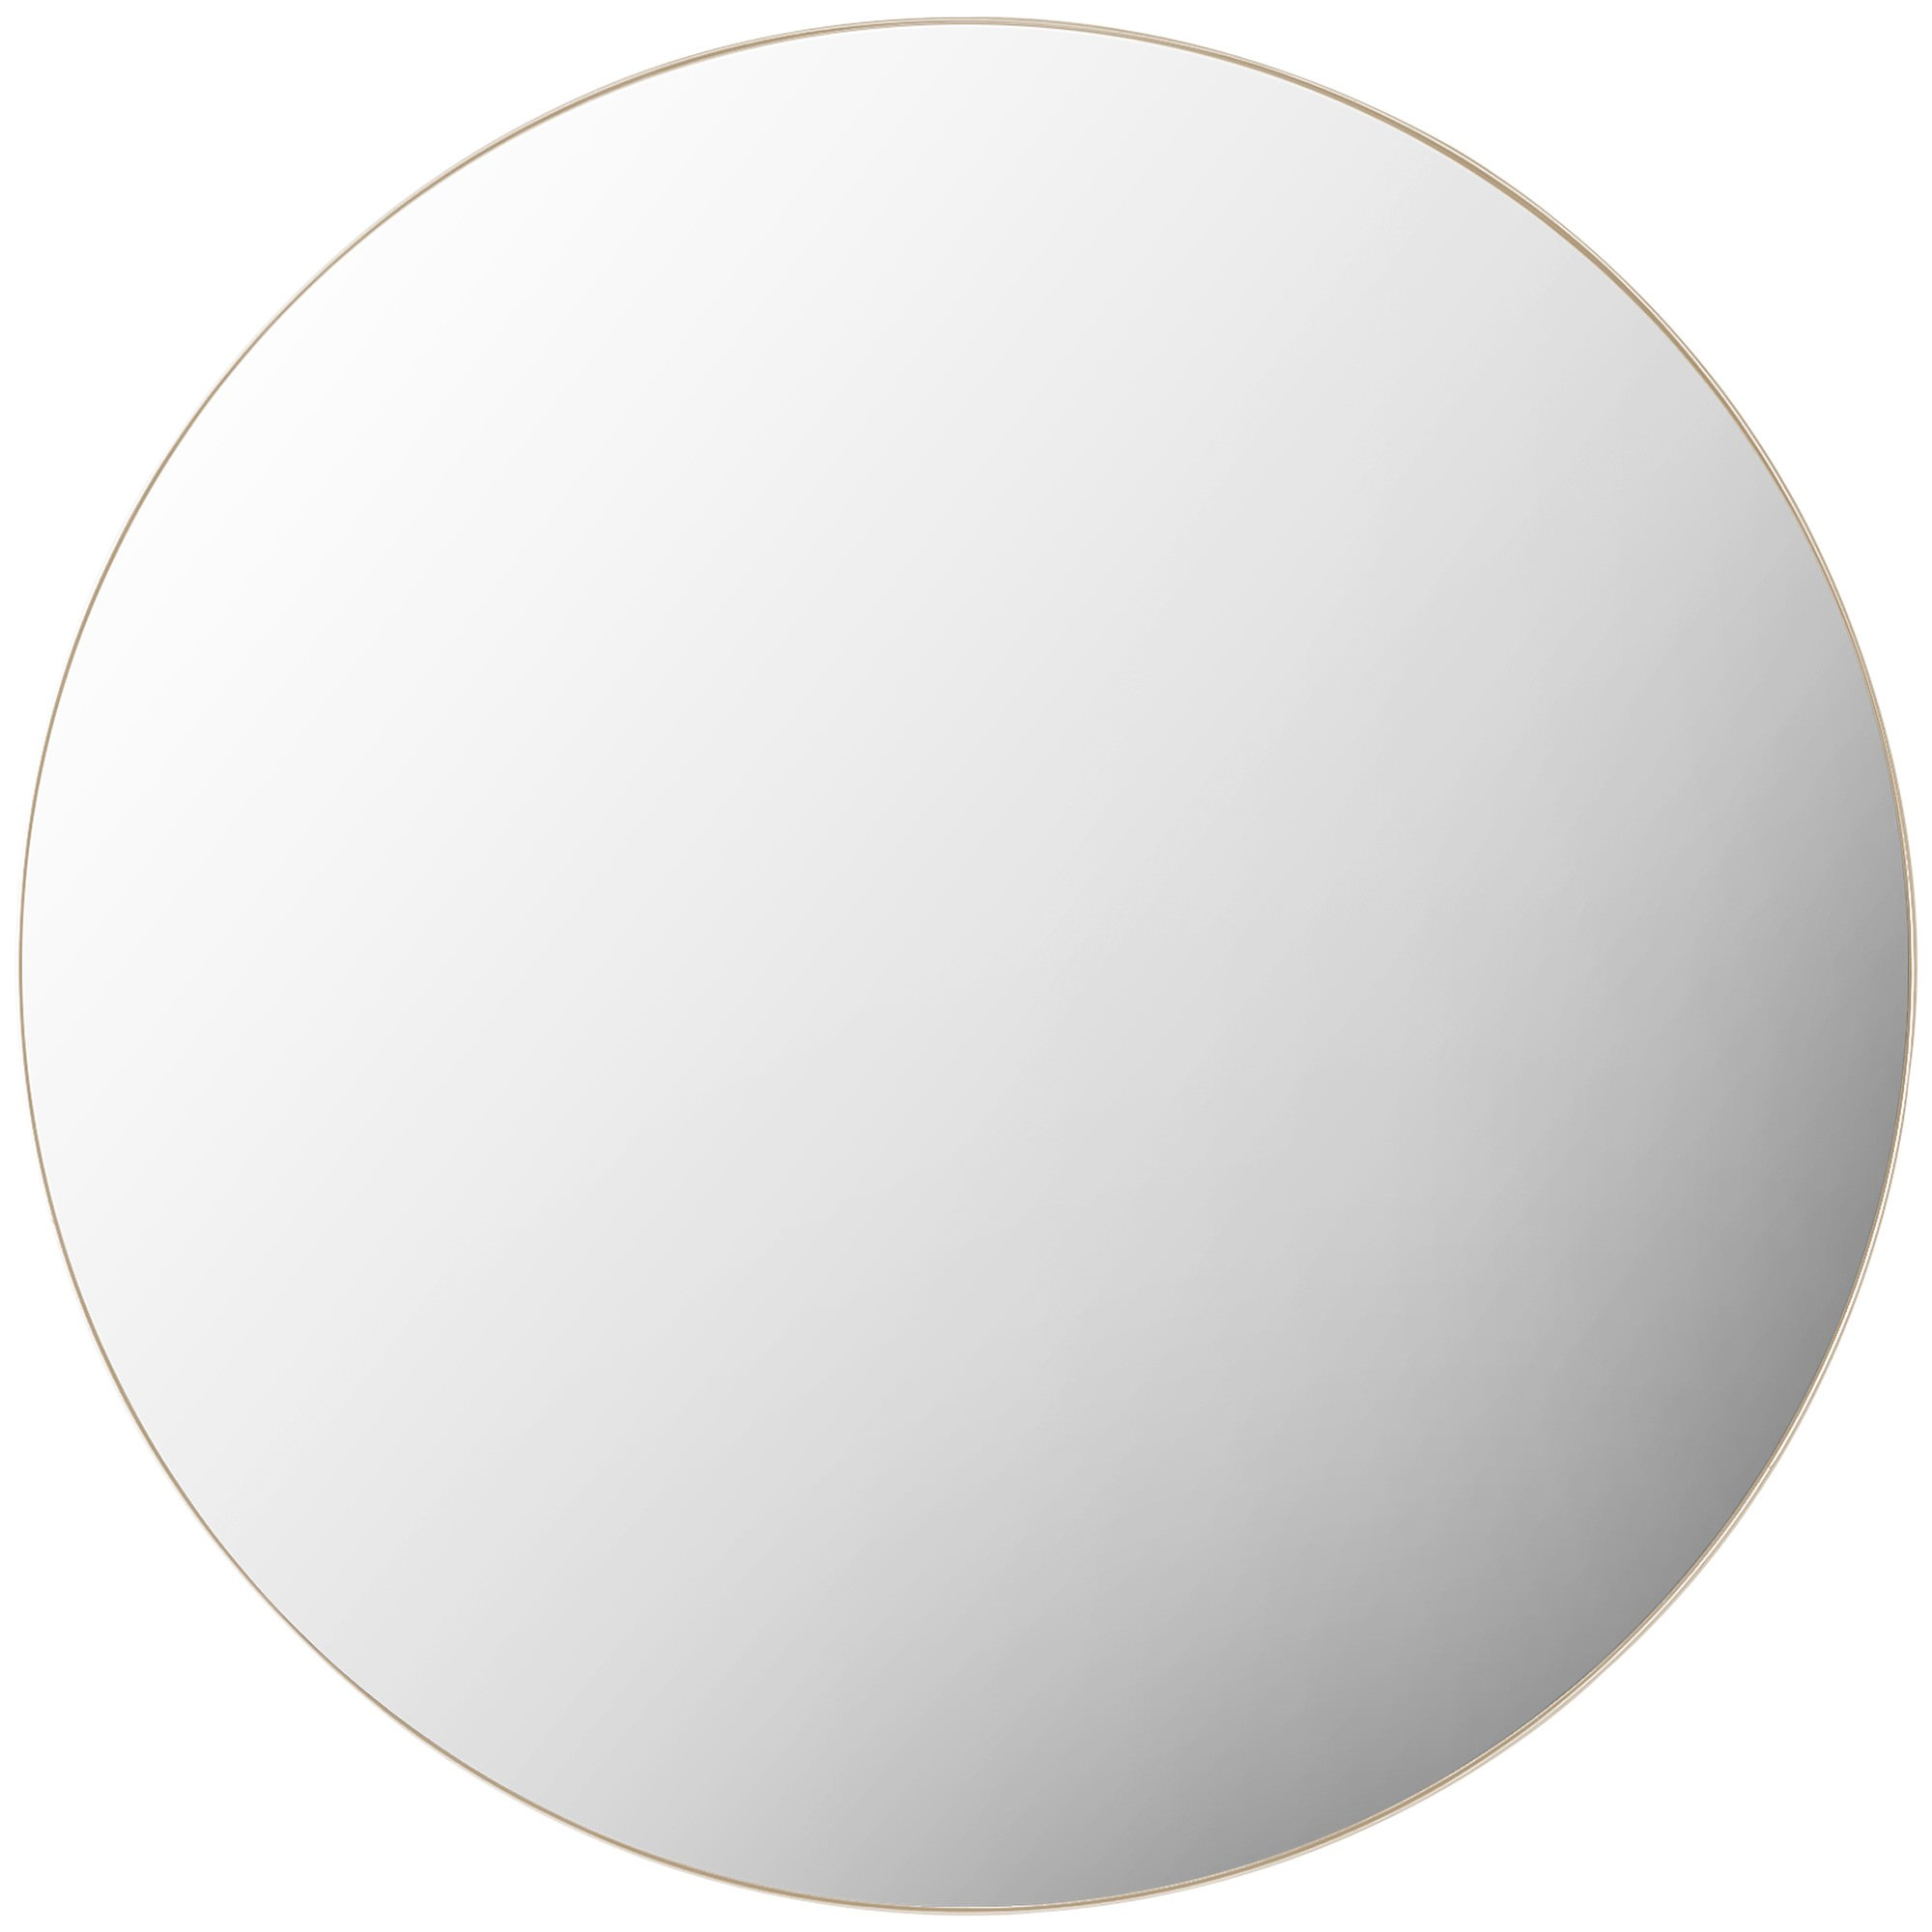 Harlow Metal Frame Round Wall Mirror, 100cm, Champagne